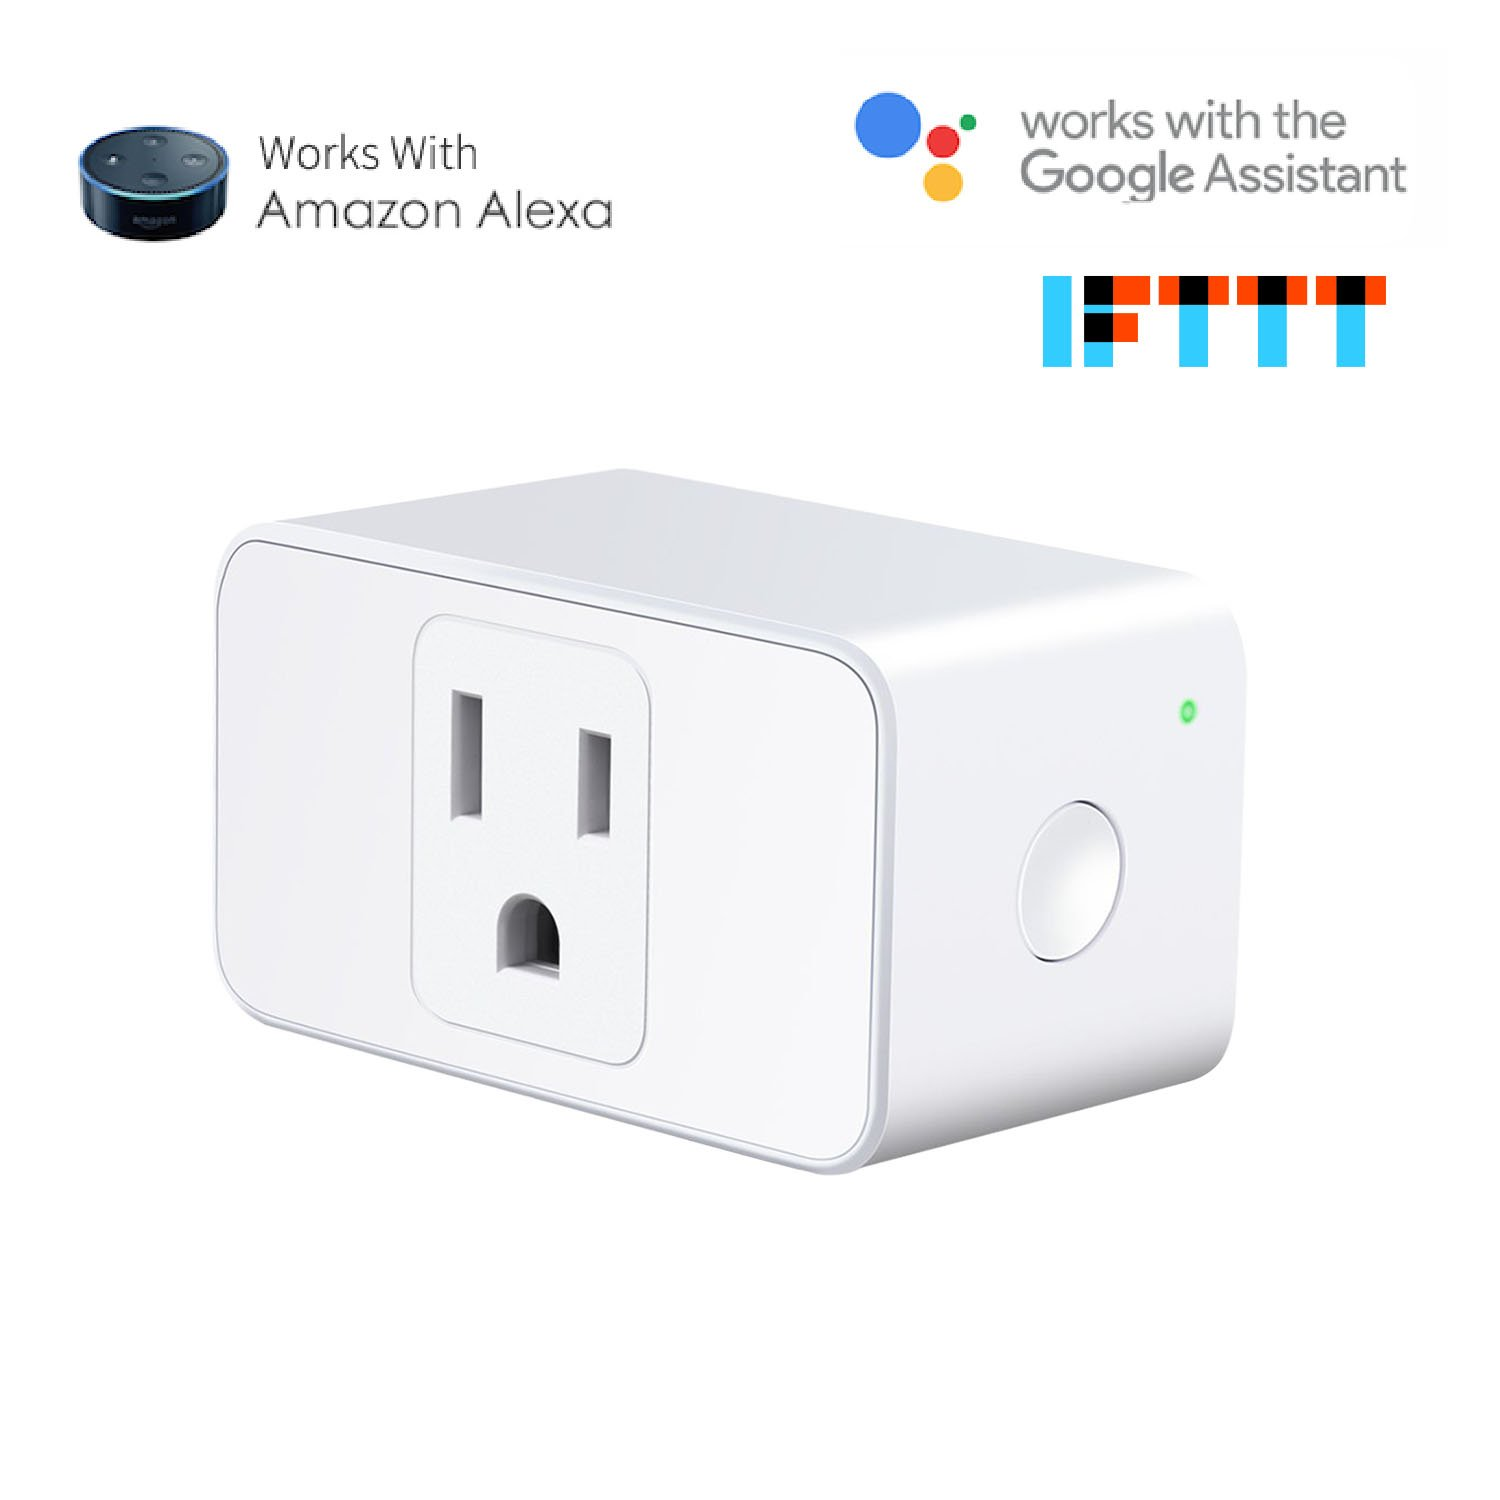 Meross Wifi Smart Plug Compatible with Alexa and Google Home, Wi-Fi Smart Socket Outlet Control Your Lights, Appliances From Your Phone (1 piece) by meross